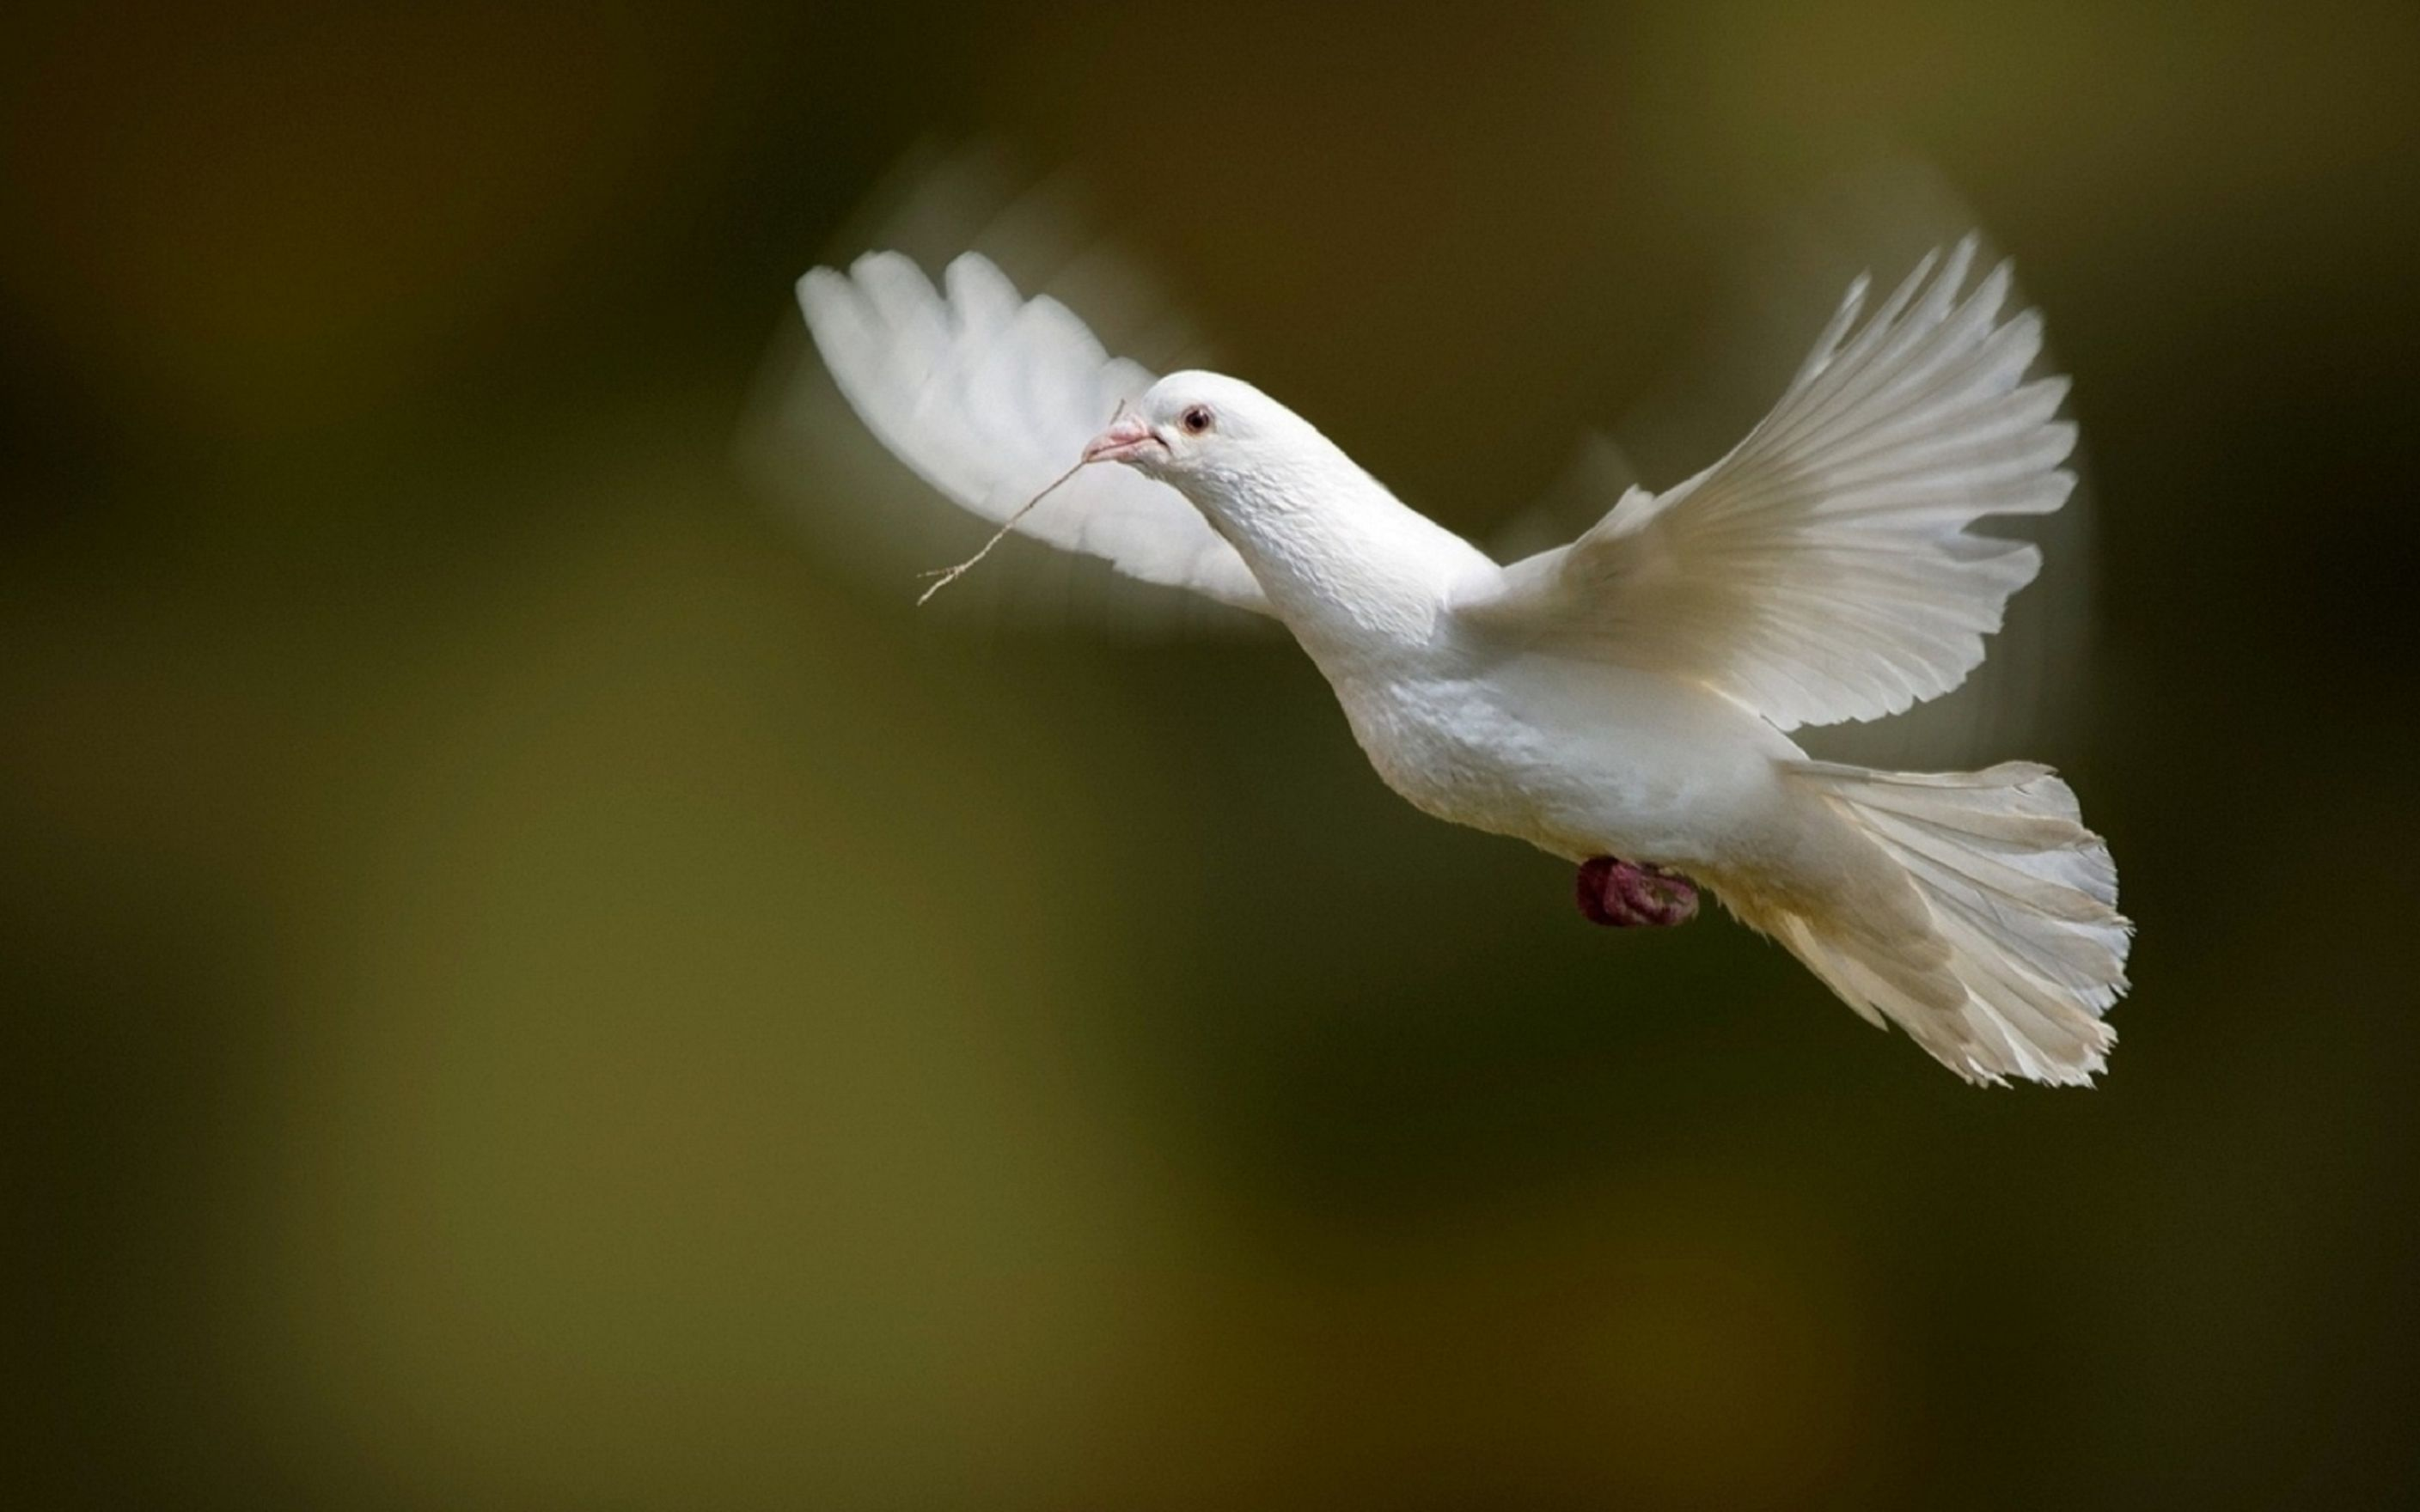 Download free HD White Dove Bird Flying Photo Wallpaper, image